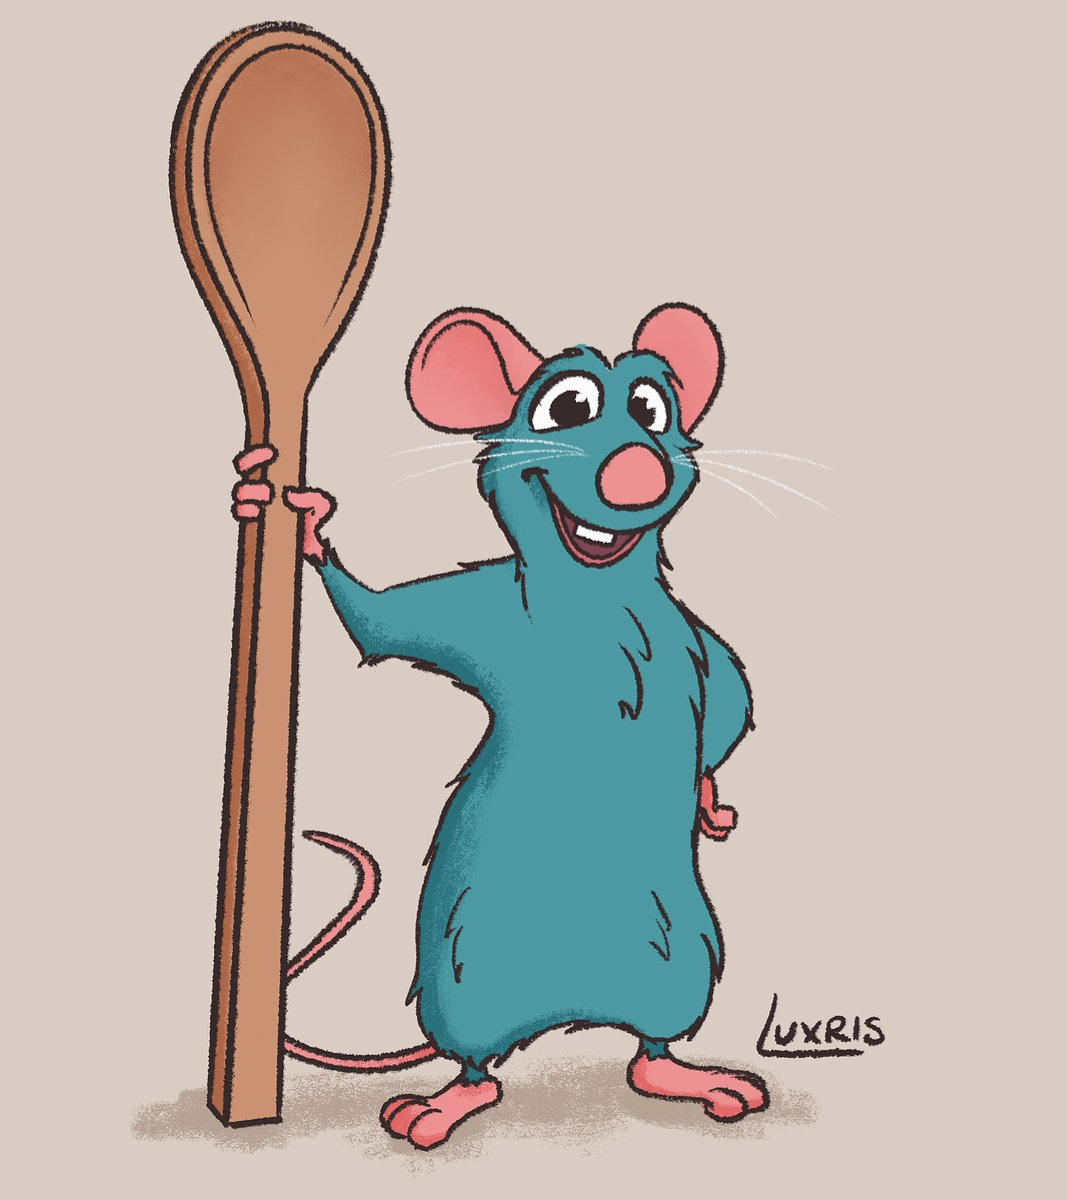 Lux On Twitter Wind Down Drawing For Today Little Chef Remy Ratatouille Disney Pixar Art Digitalart Illustration